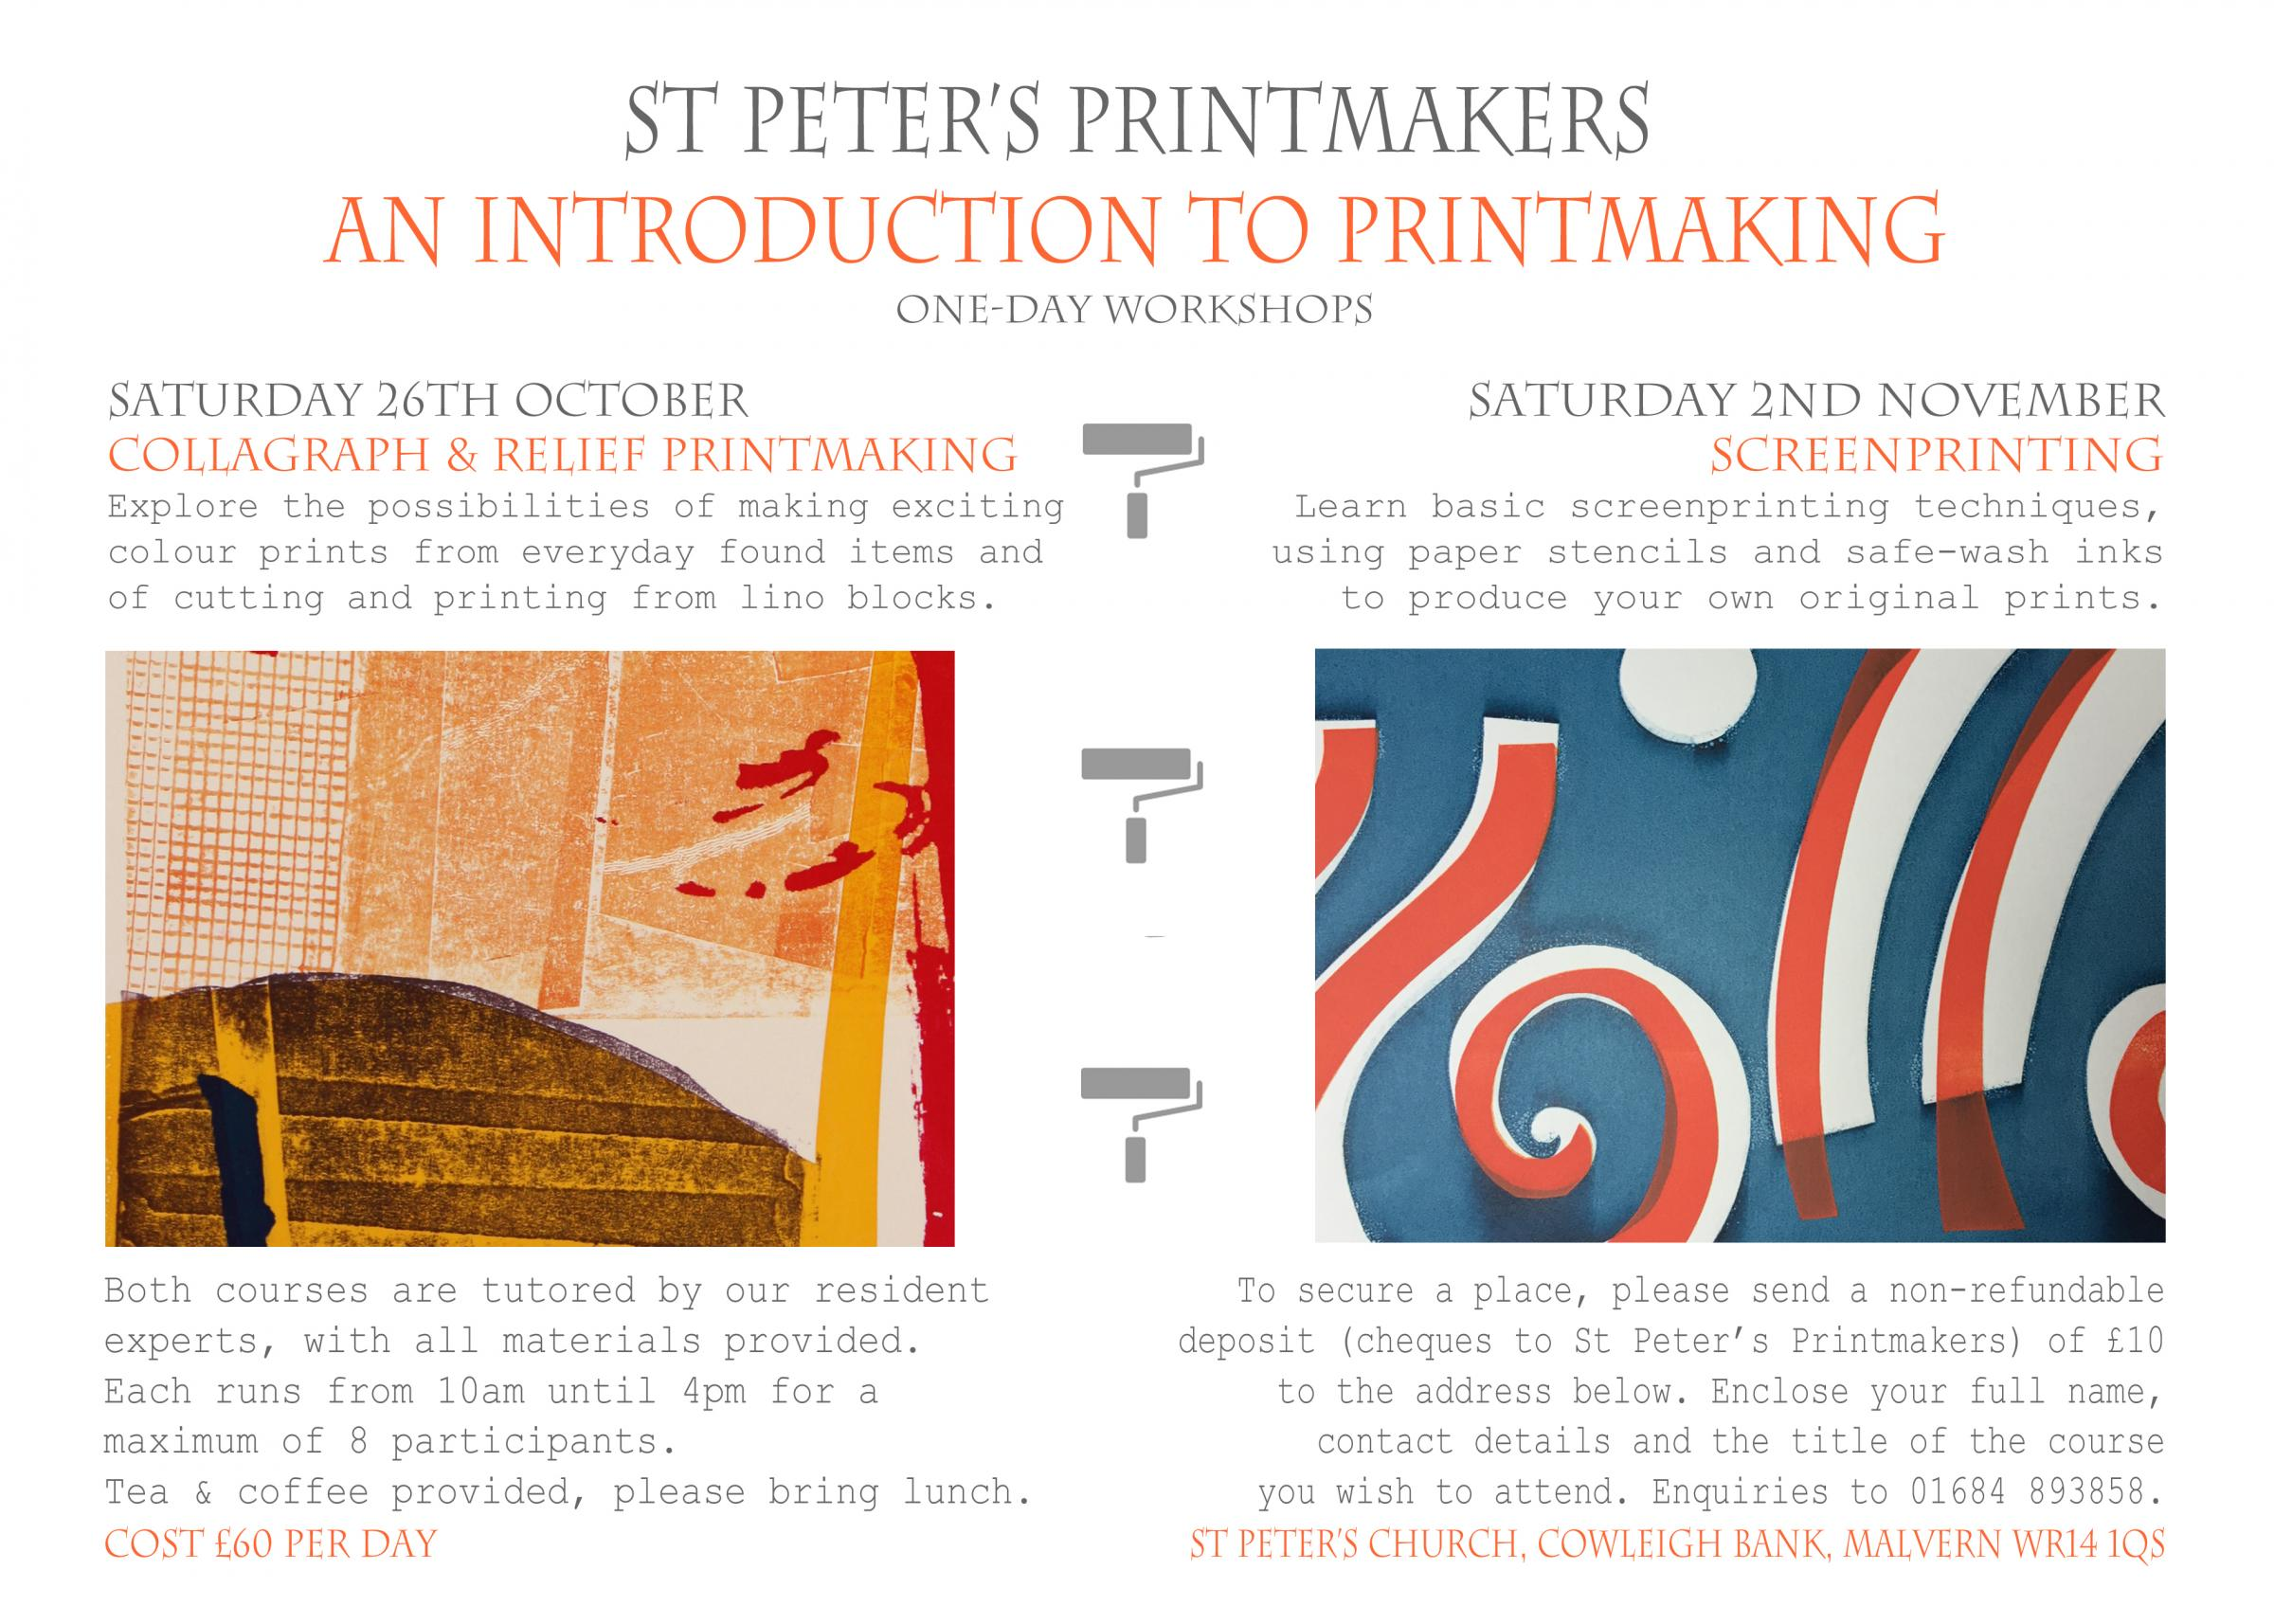 Introduction to Printmaking - Collagraph & Relief Printmaking